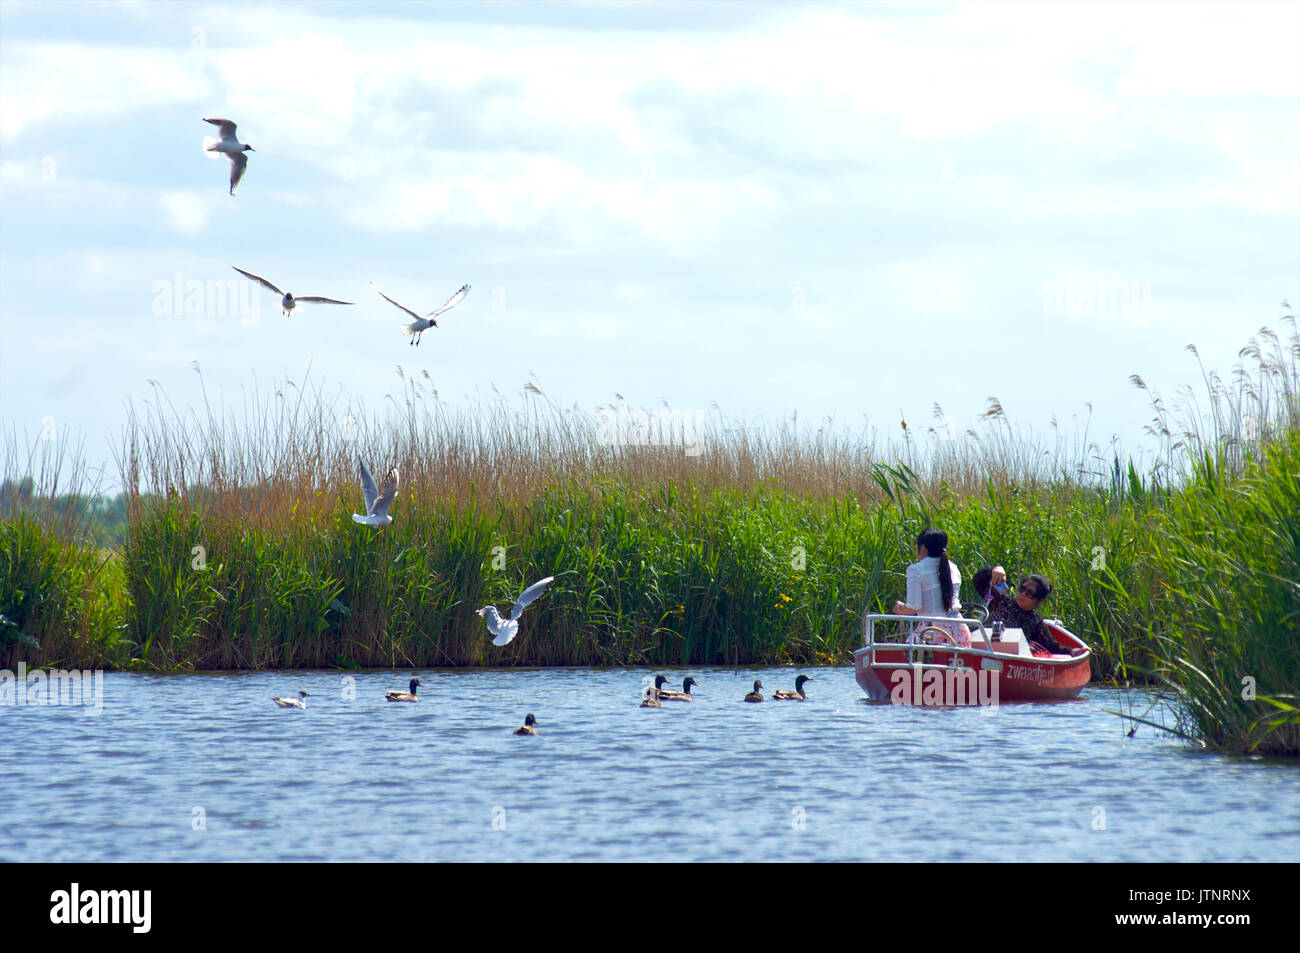 Japanese tourist couple in a boat feeding the birds and ducks on lake Bovenwijde near Giethoorn, the Netherlands - Stock Image